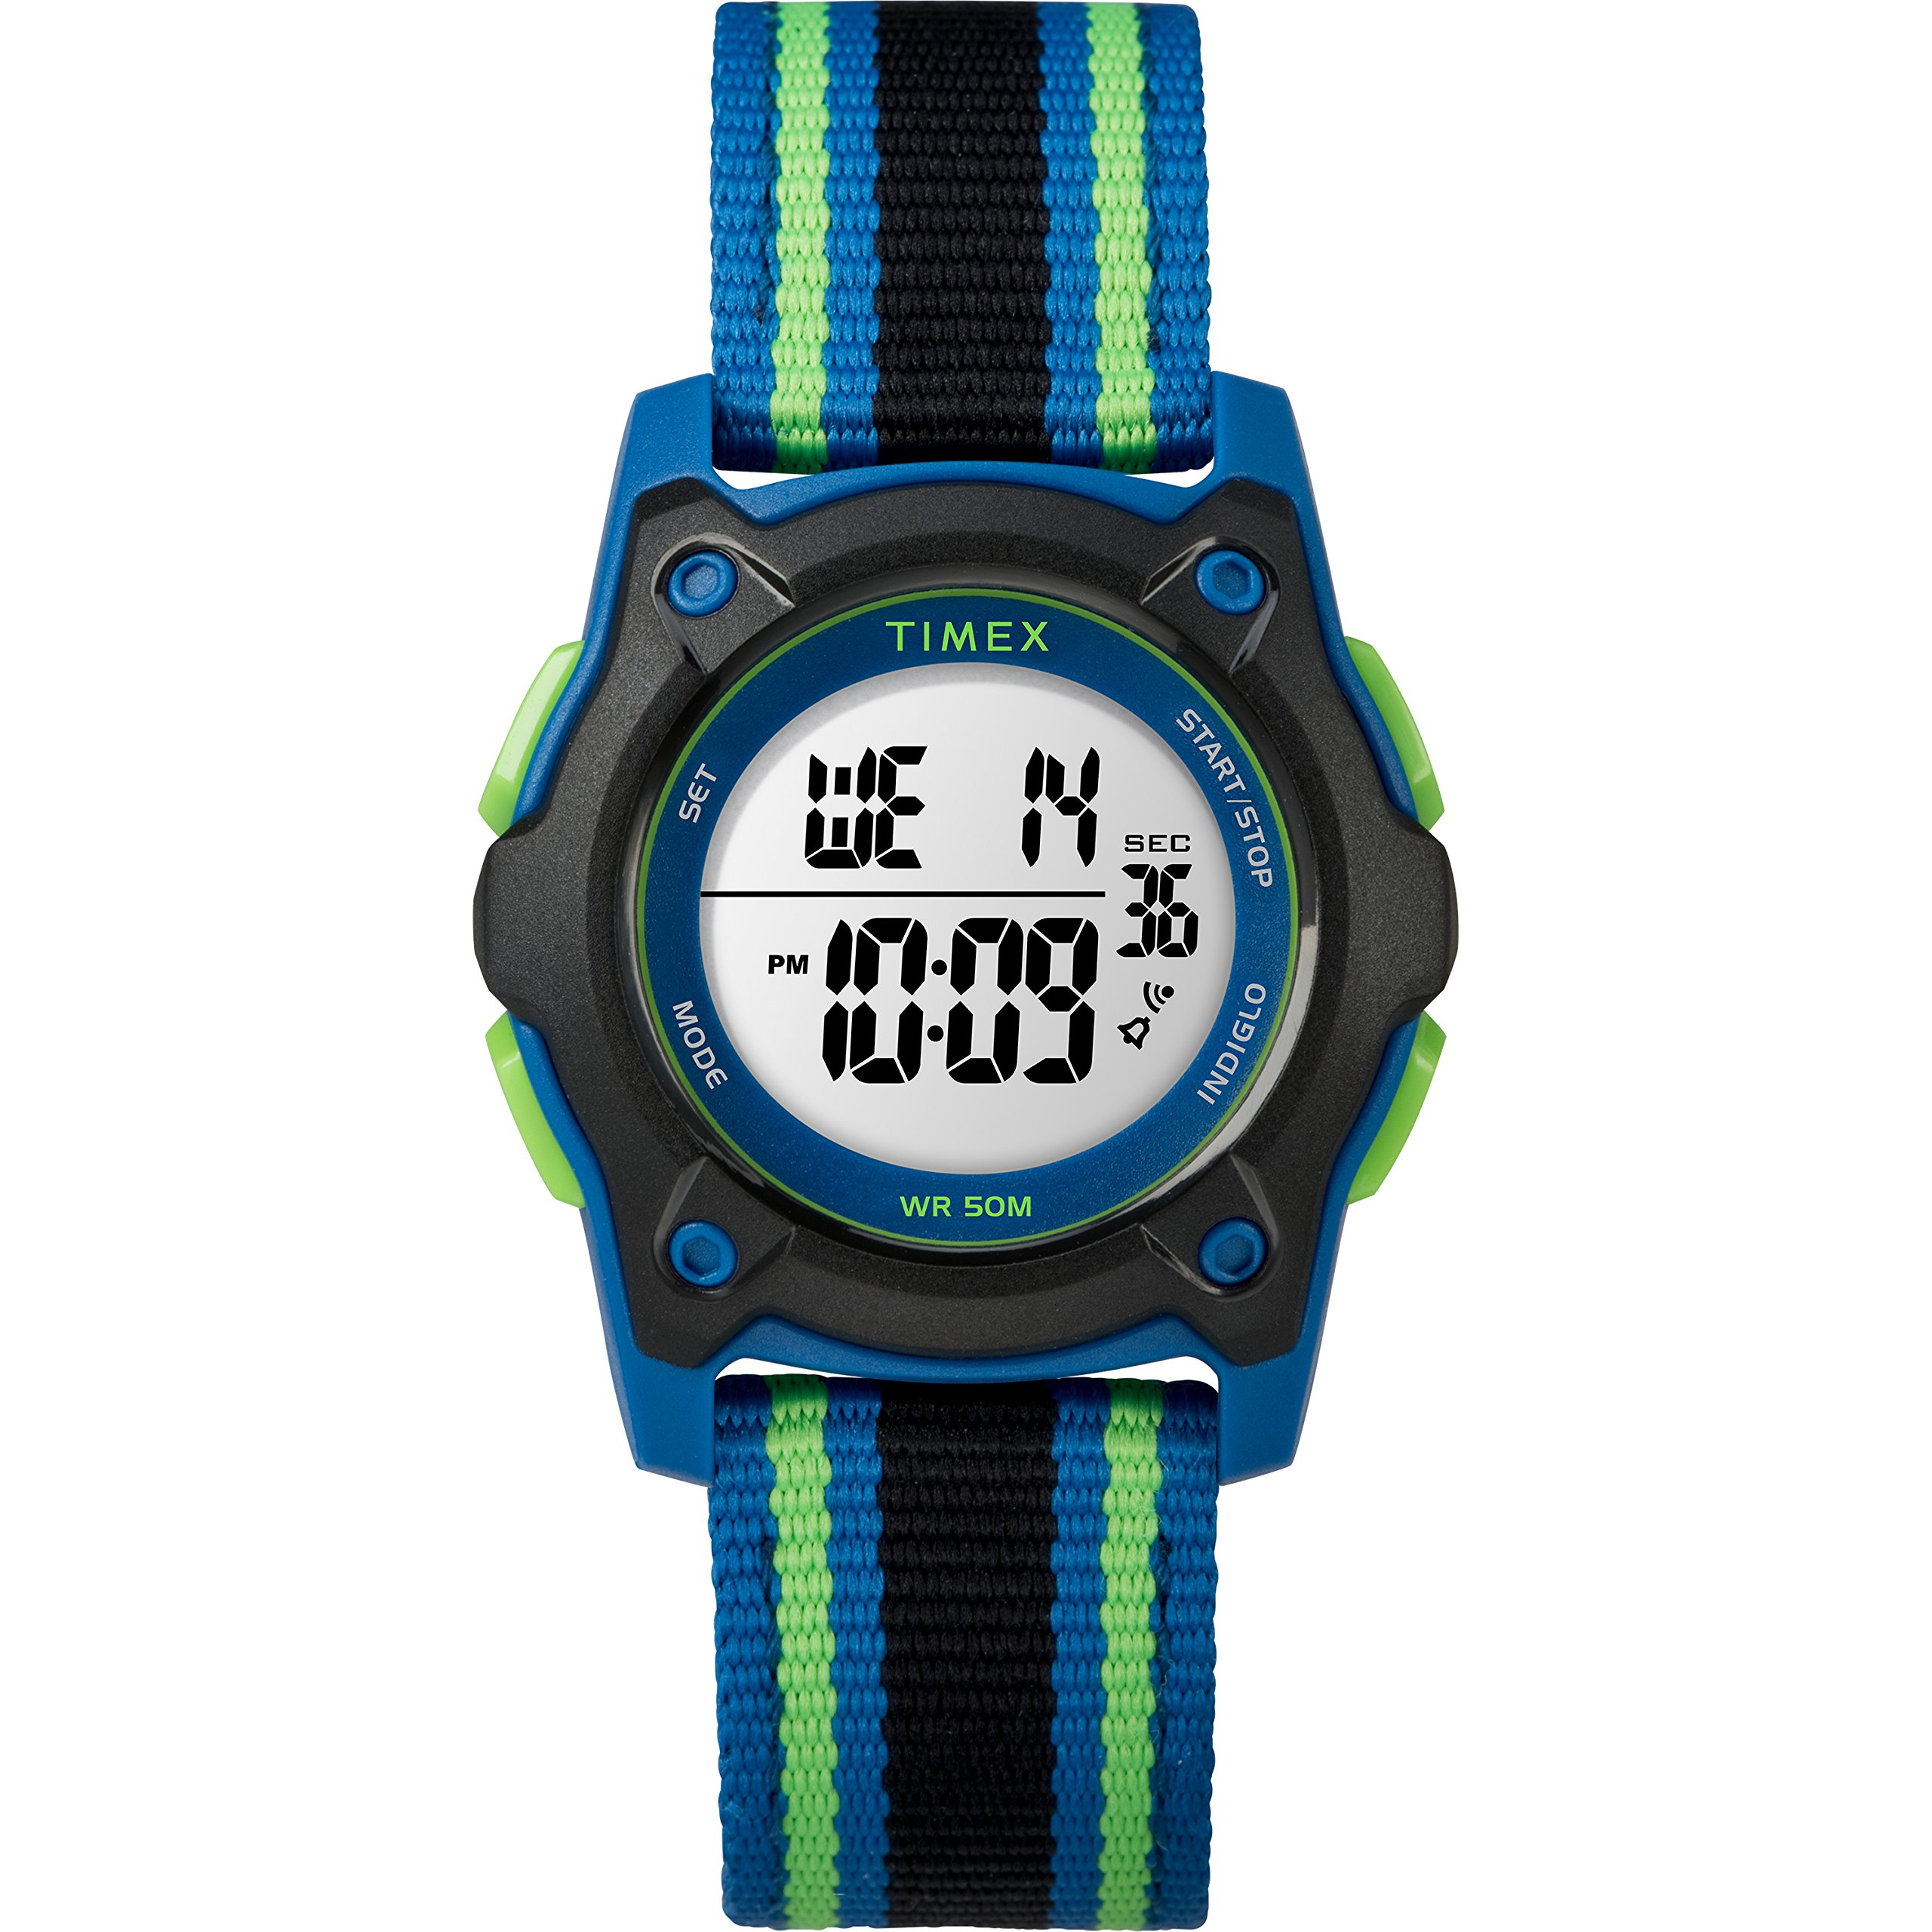 Timex Time Machines Digital 35mm Watch- Buy Online in India at  desertcart.in. ProductId : 77424520.